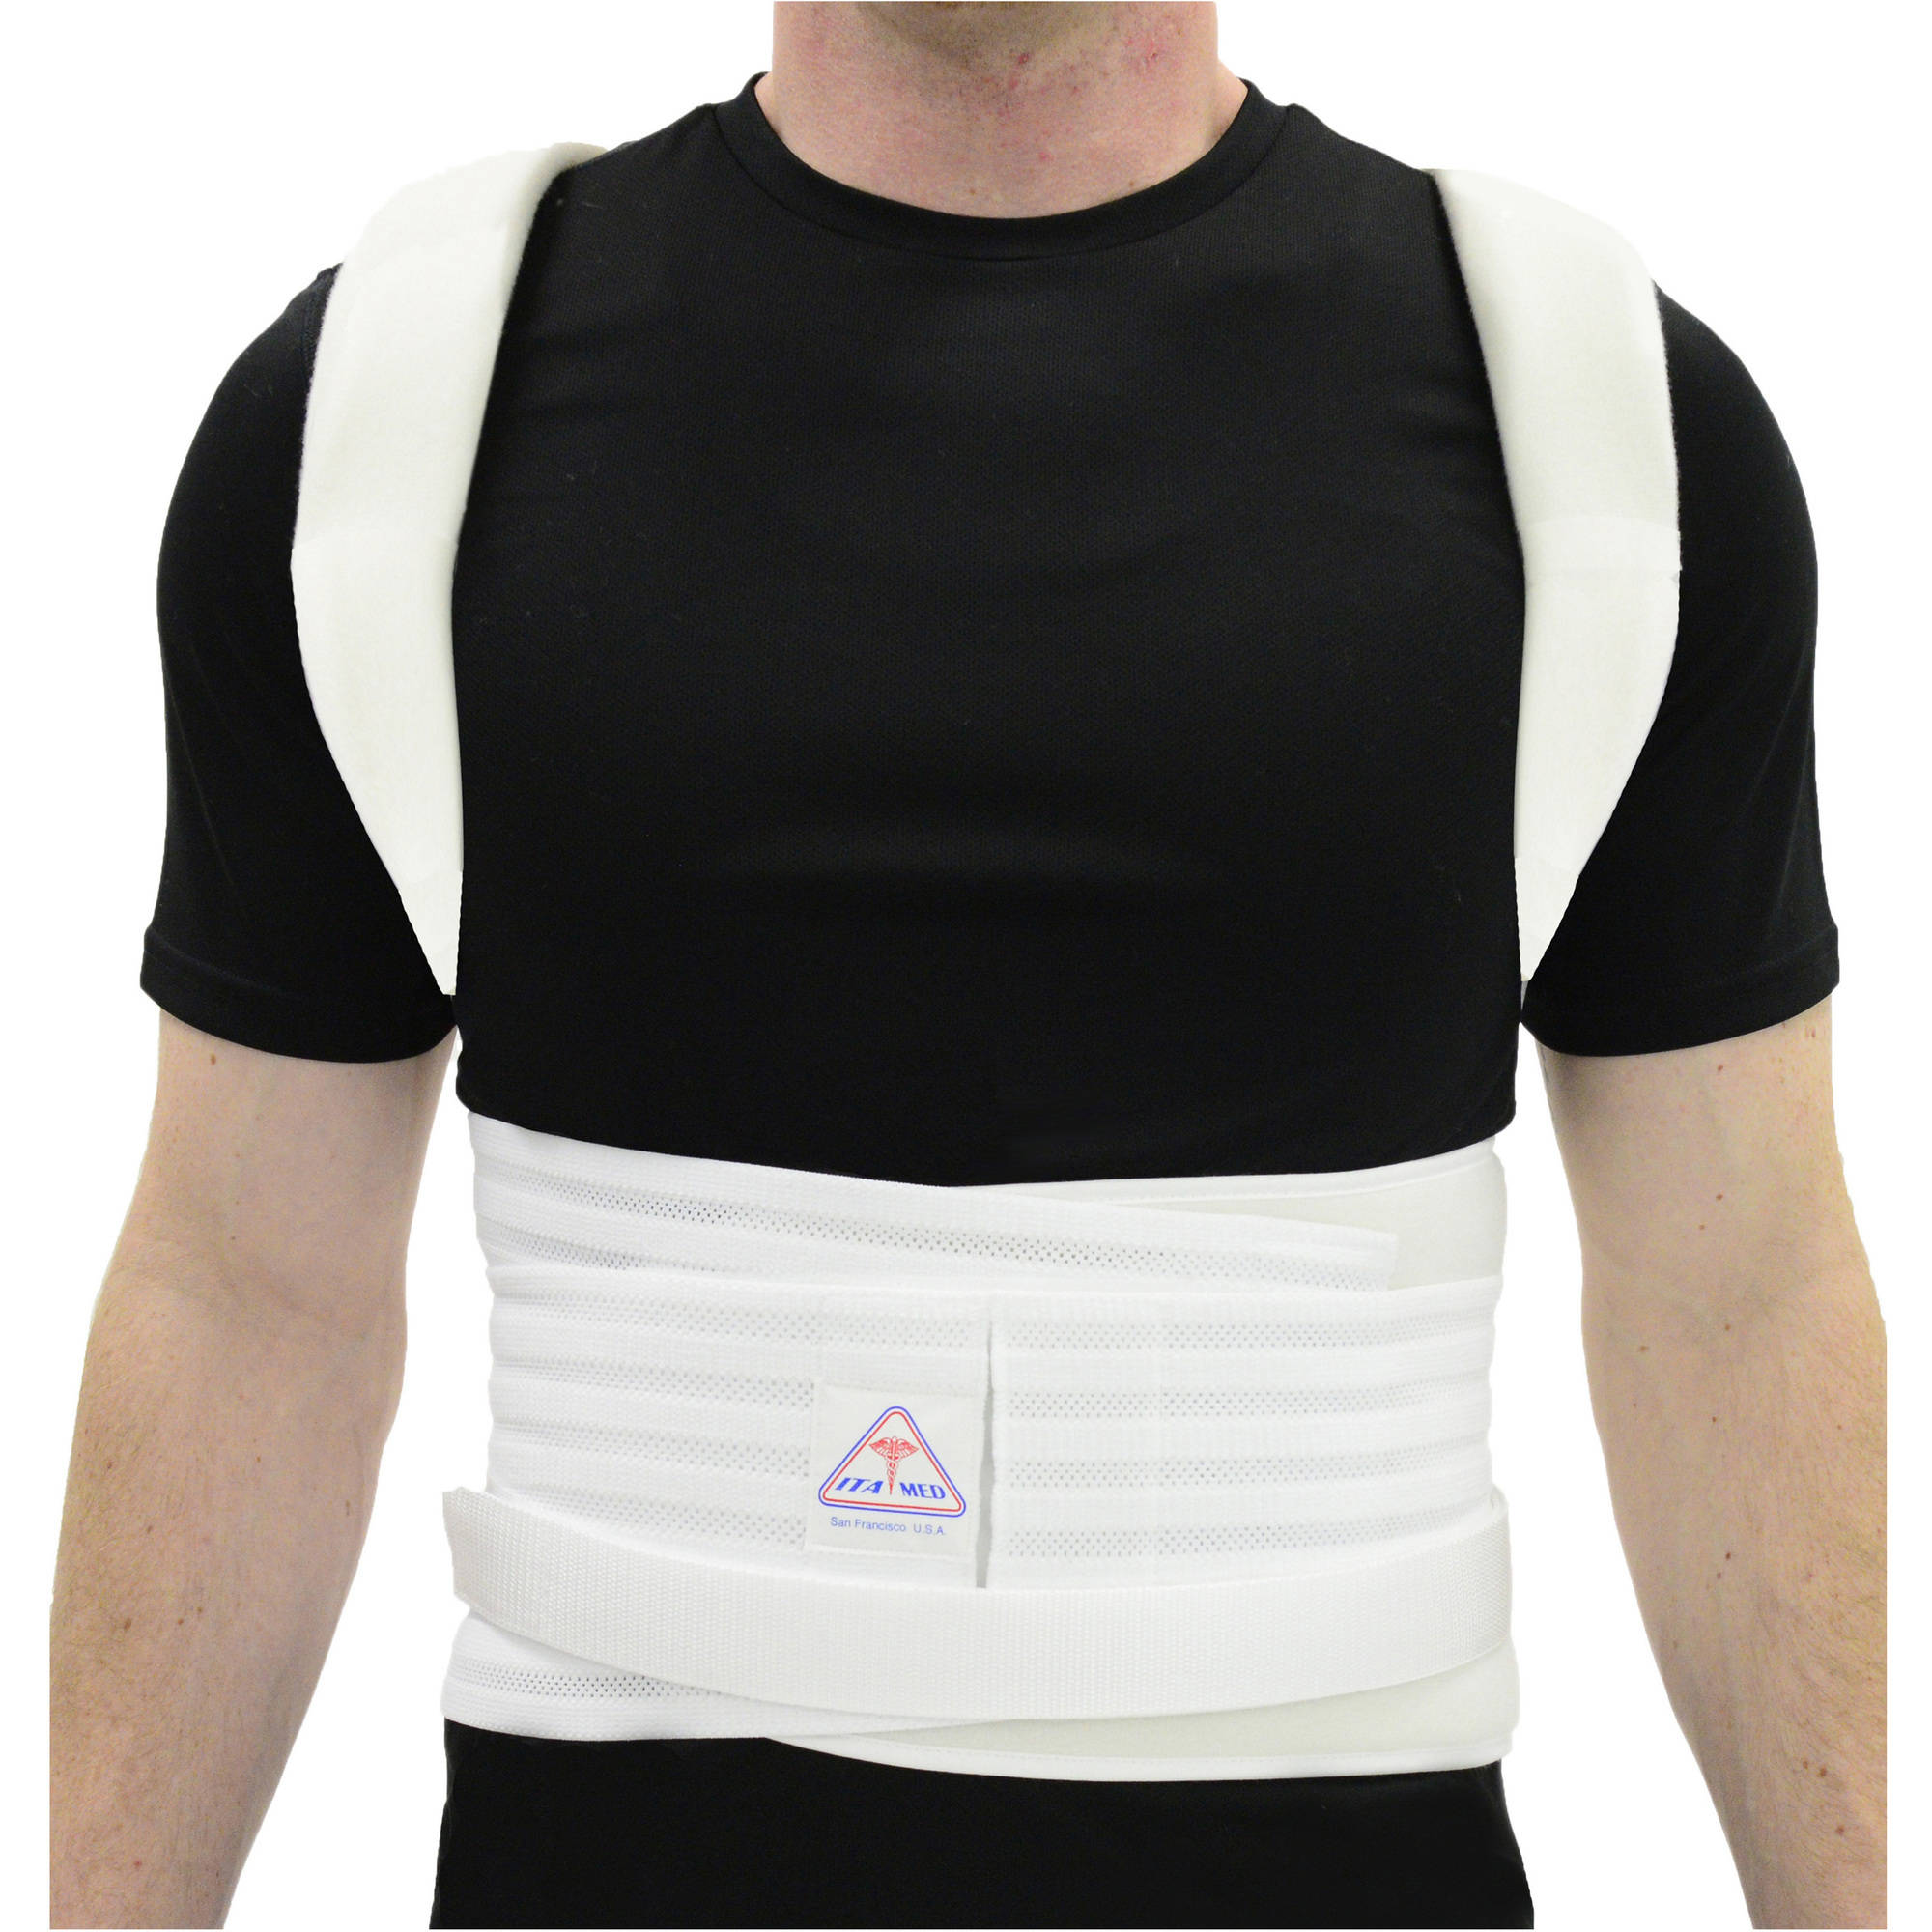 ITA-MED Posture Corrector for Men: TLSO-250(M)